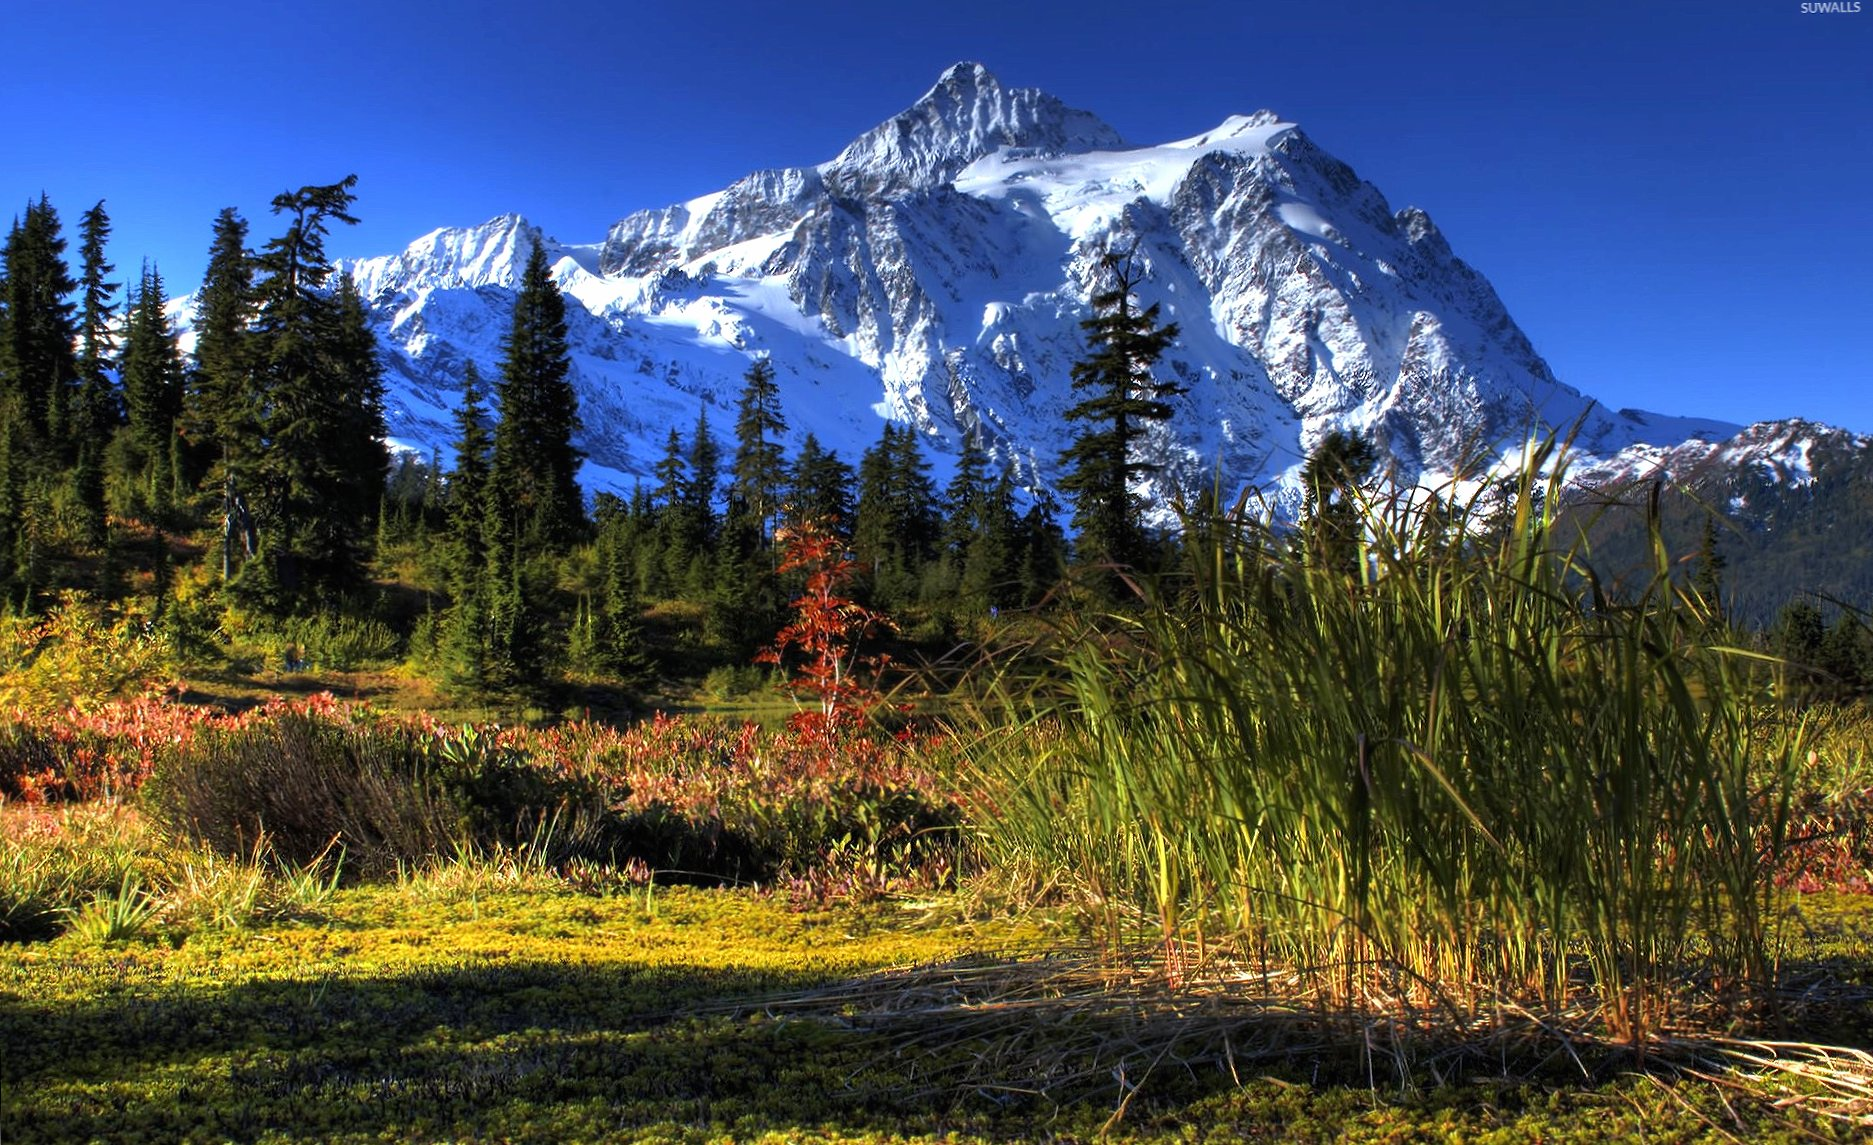 Green nature by the snowy peak wallpapers HD quality